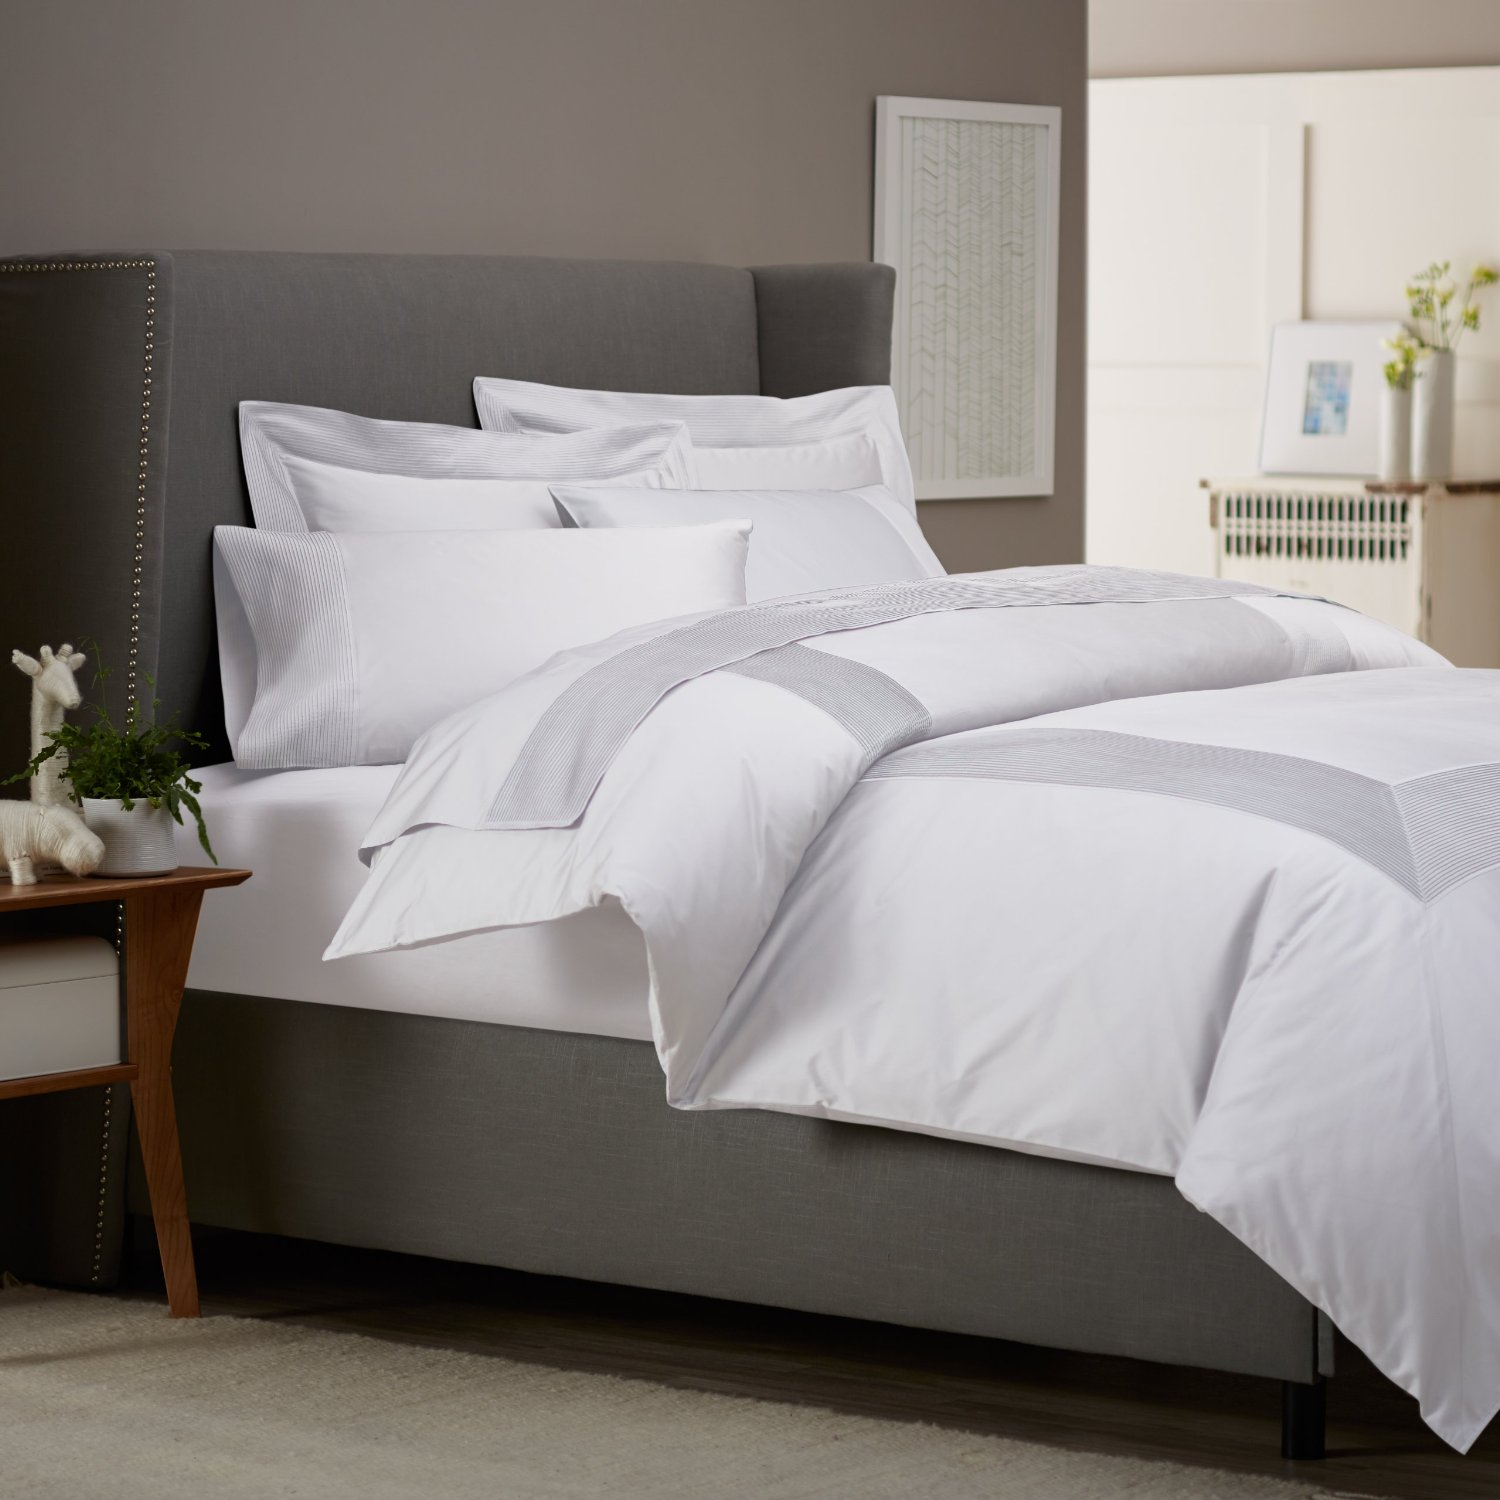 Modern Masculine Bedding Get Alluring Visage By Displaying A White Comforter Sets